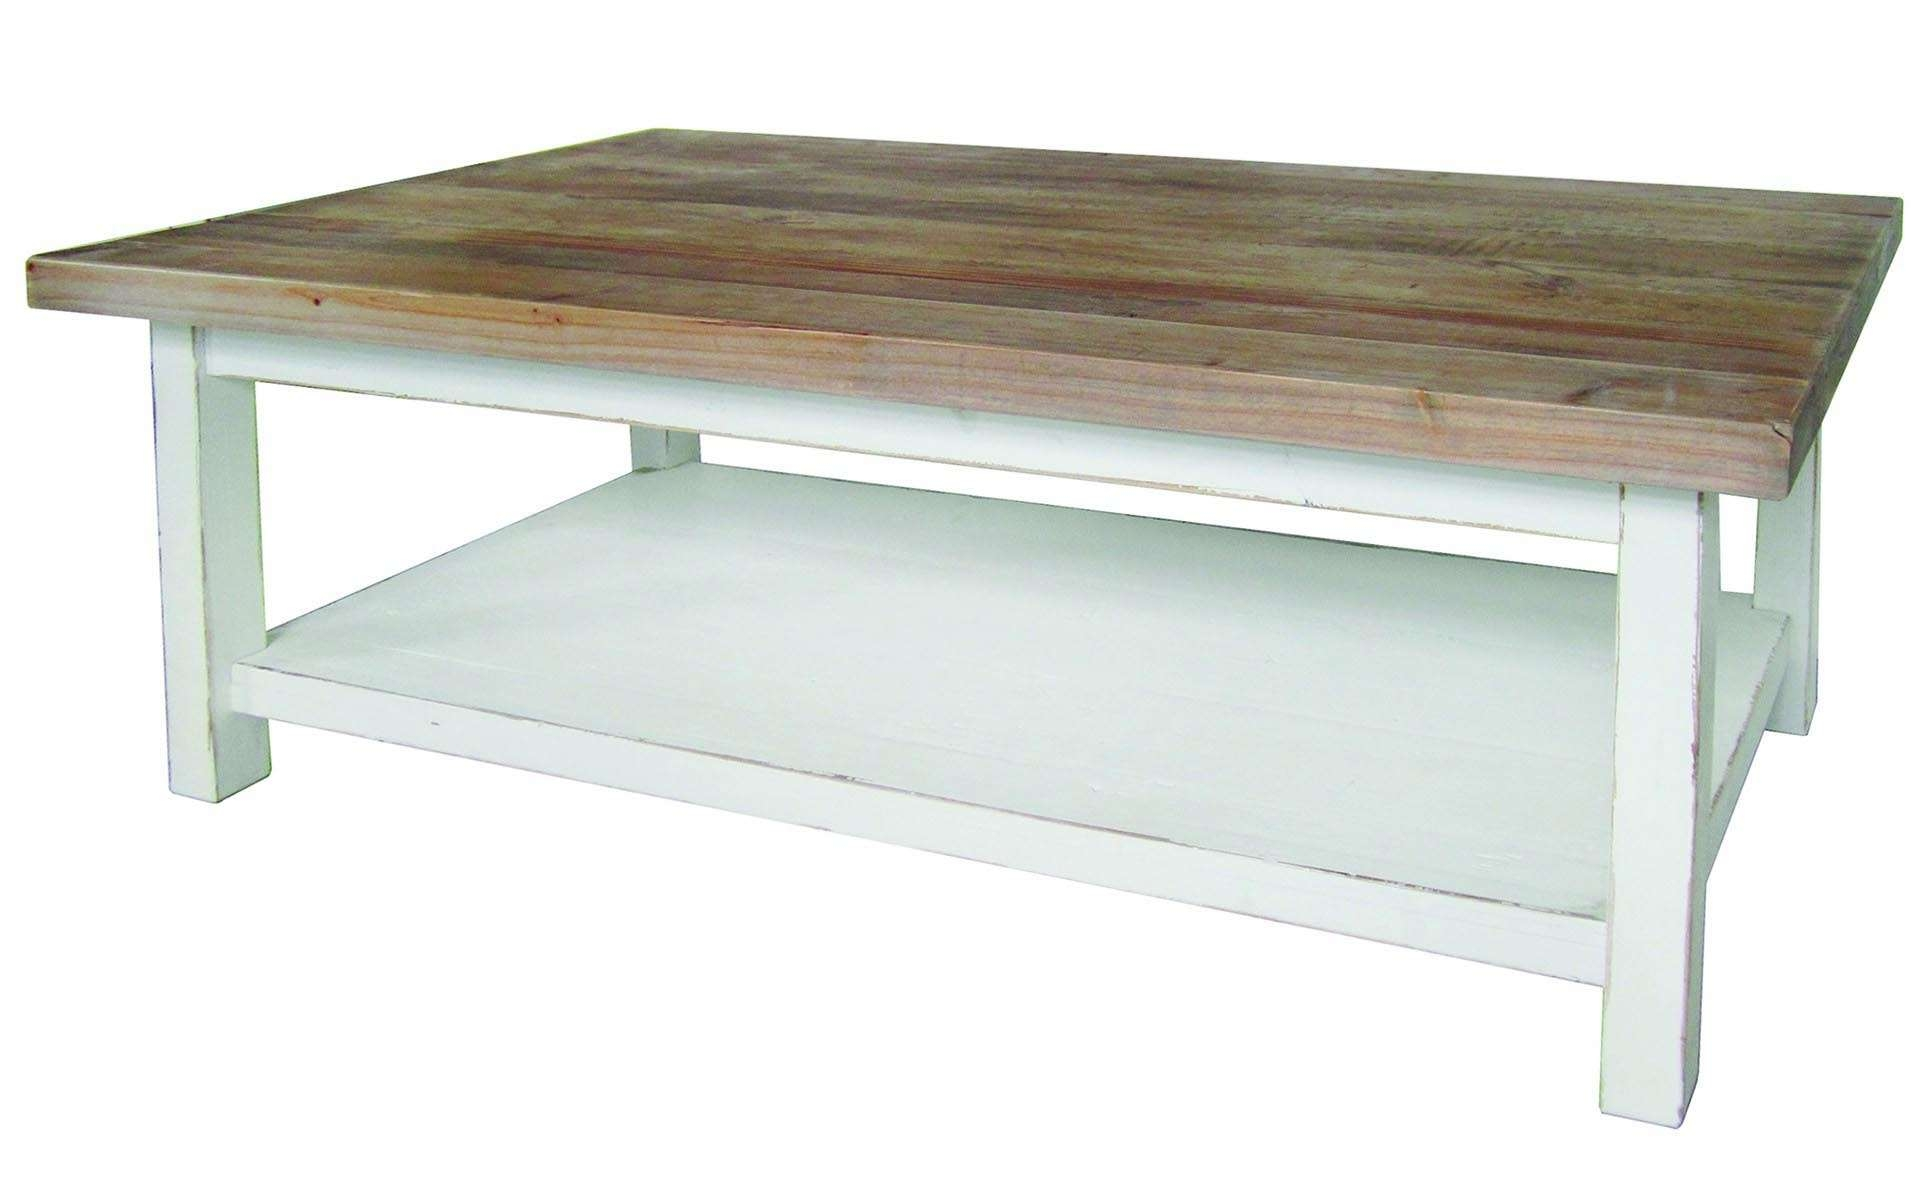 Popular Pine Coffee Tables With Storage With Regard To White Pine Coffee Table (View 19 of 20)